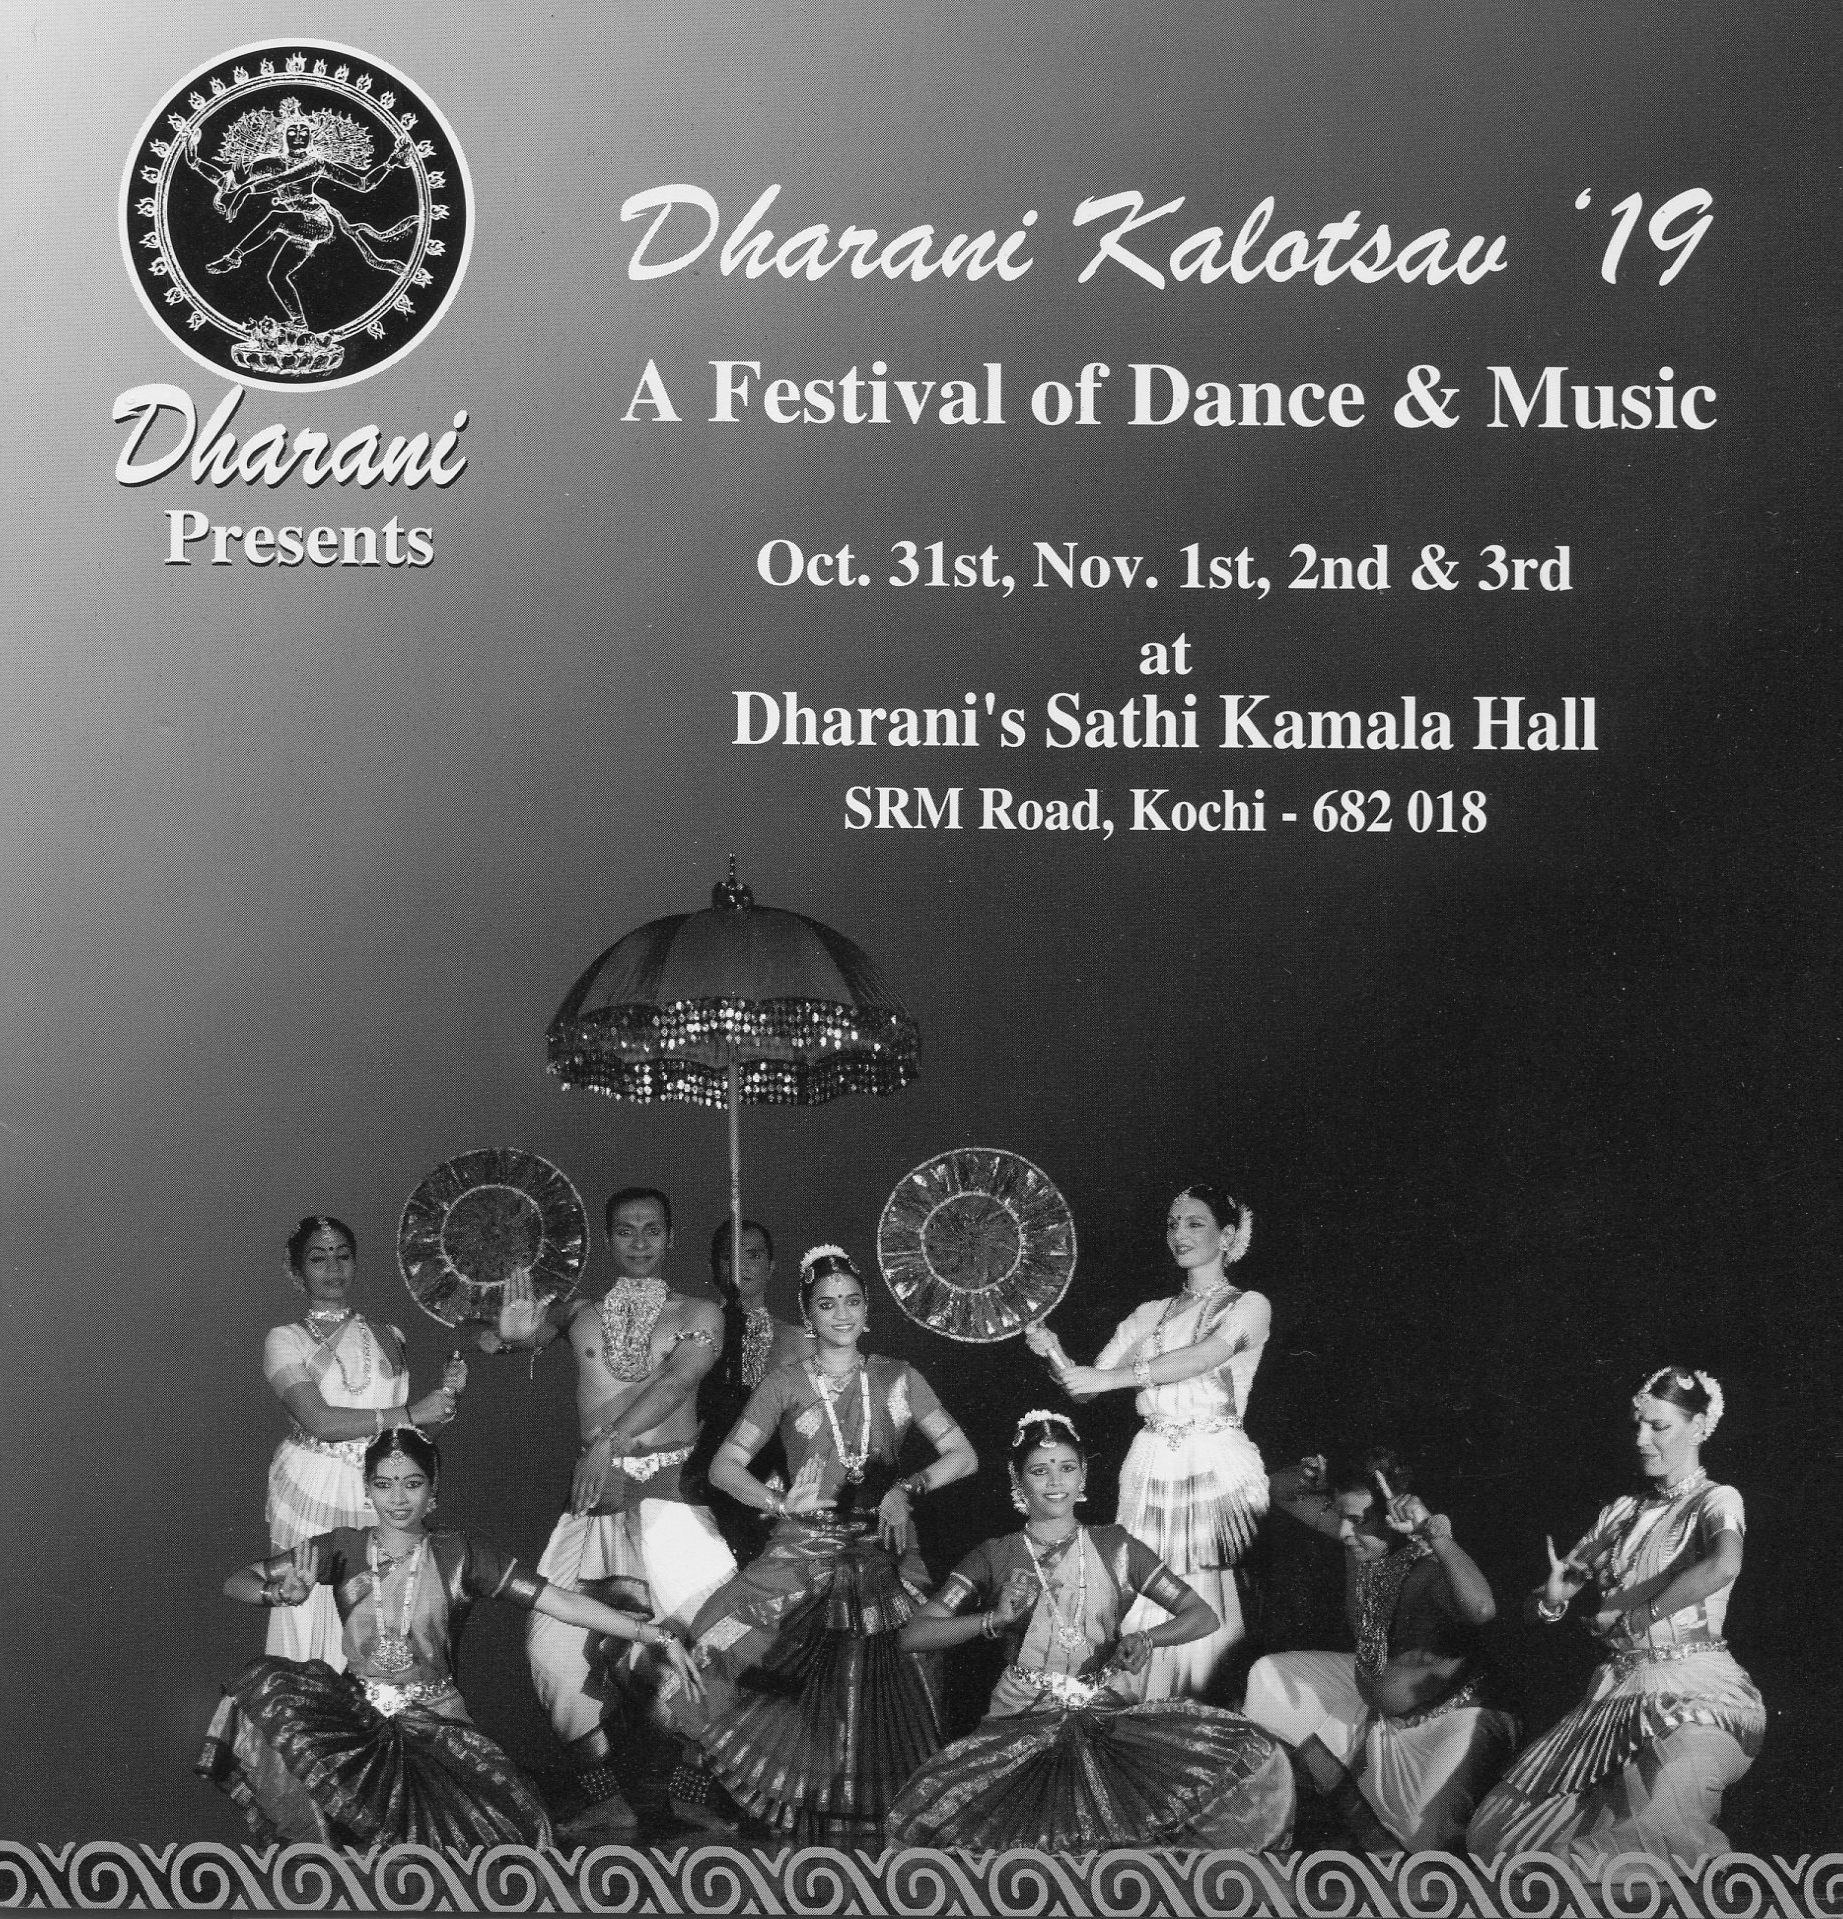 Dharani Kalotsau 19 A Festival of Dance & Music